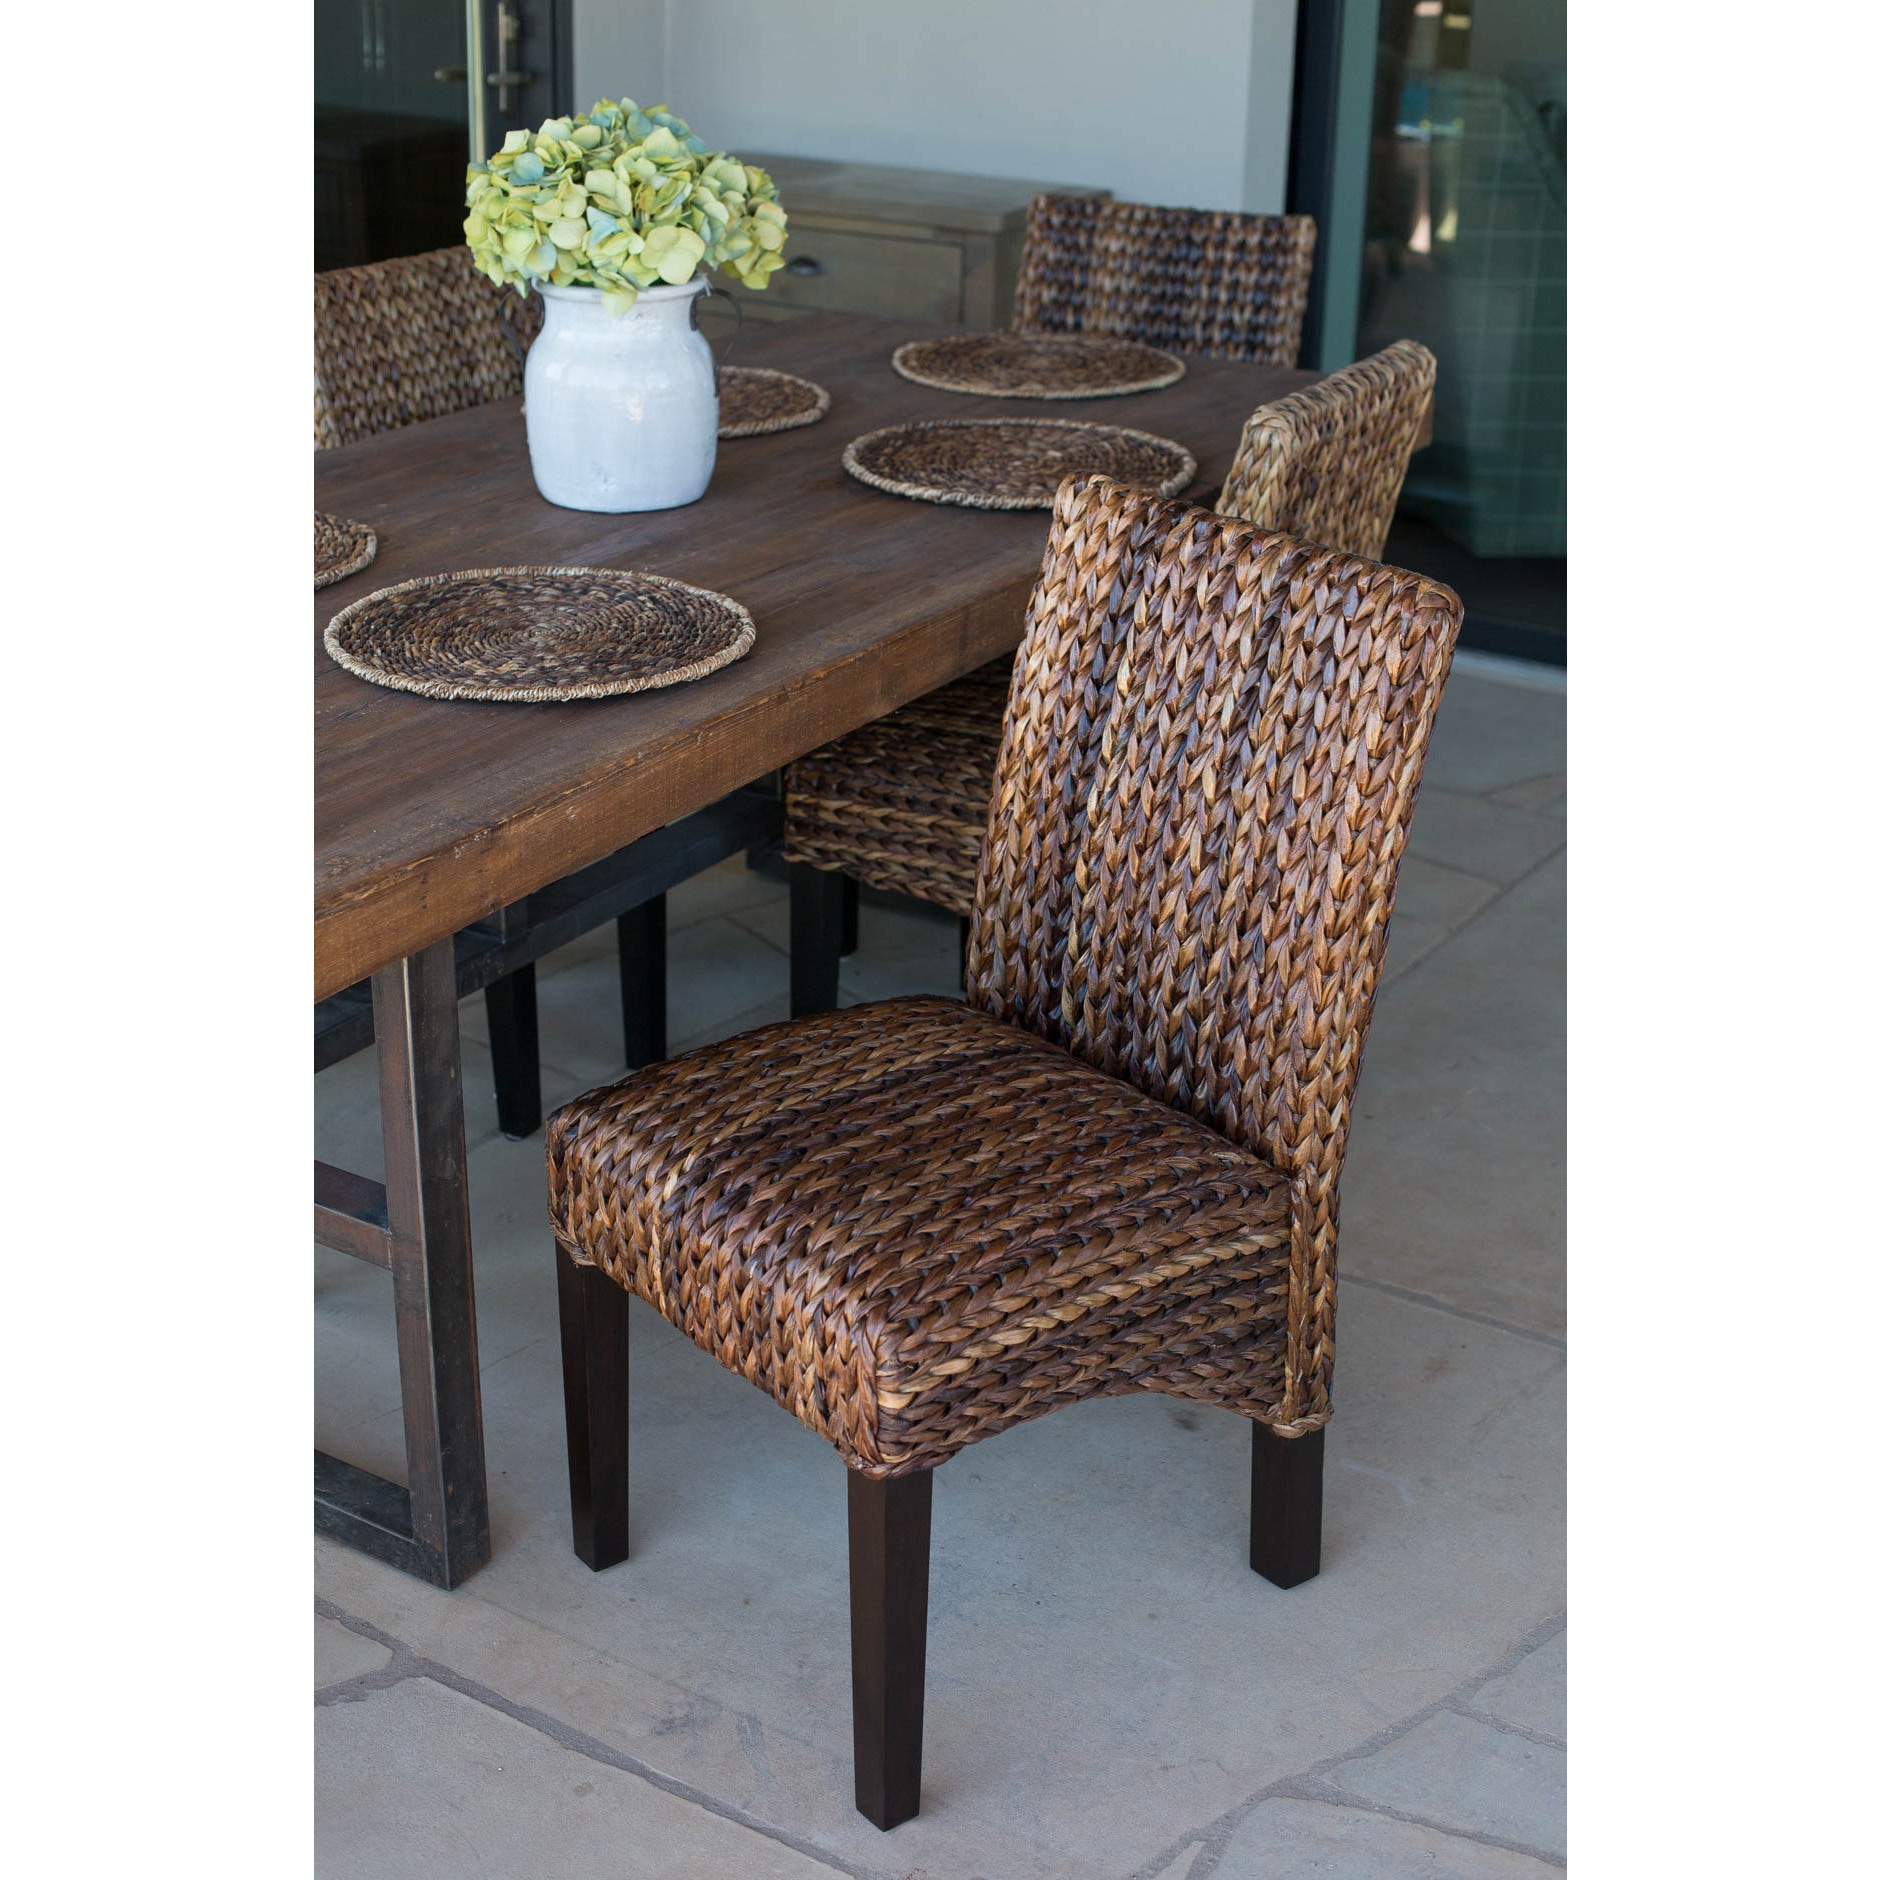 Seagrass Dining Chair The Curated Nomad Fairway Seagrass Dining Chair Set Of 2